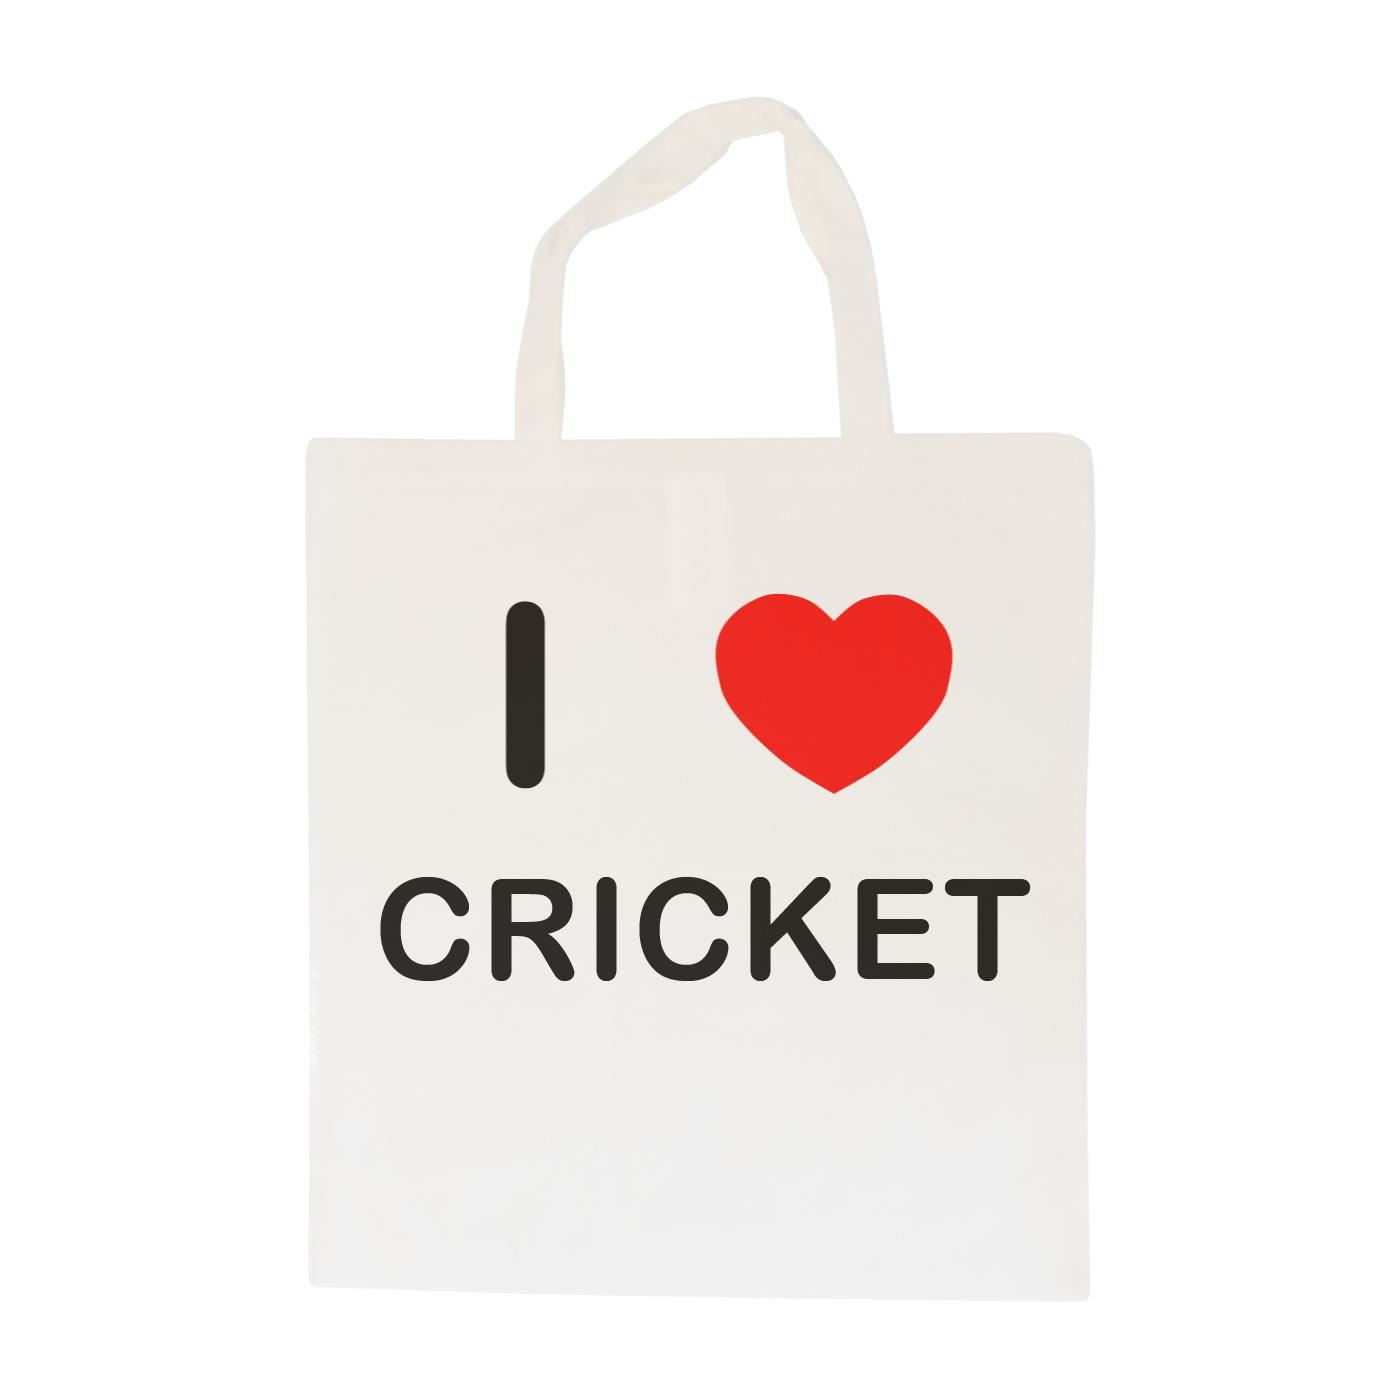 I Love Cricket - Cotton Bag | Size choice Tote, Shopper or Sling